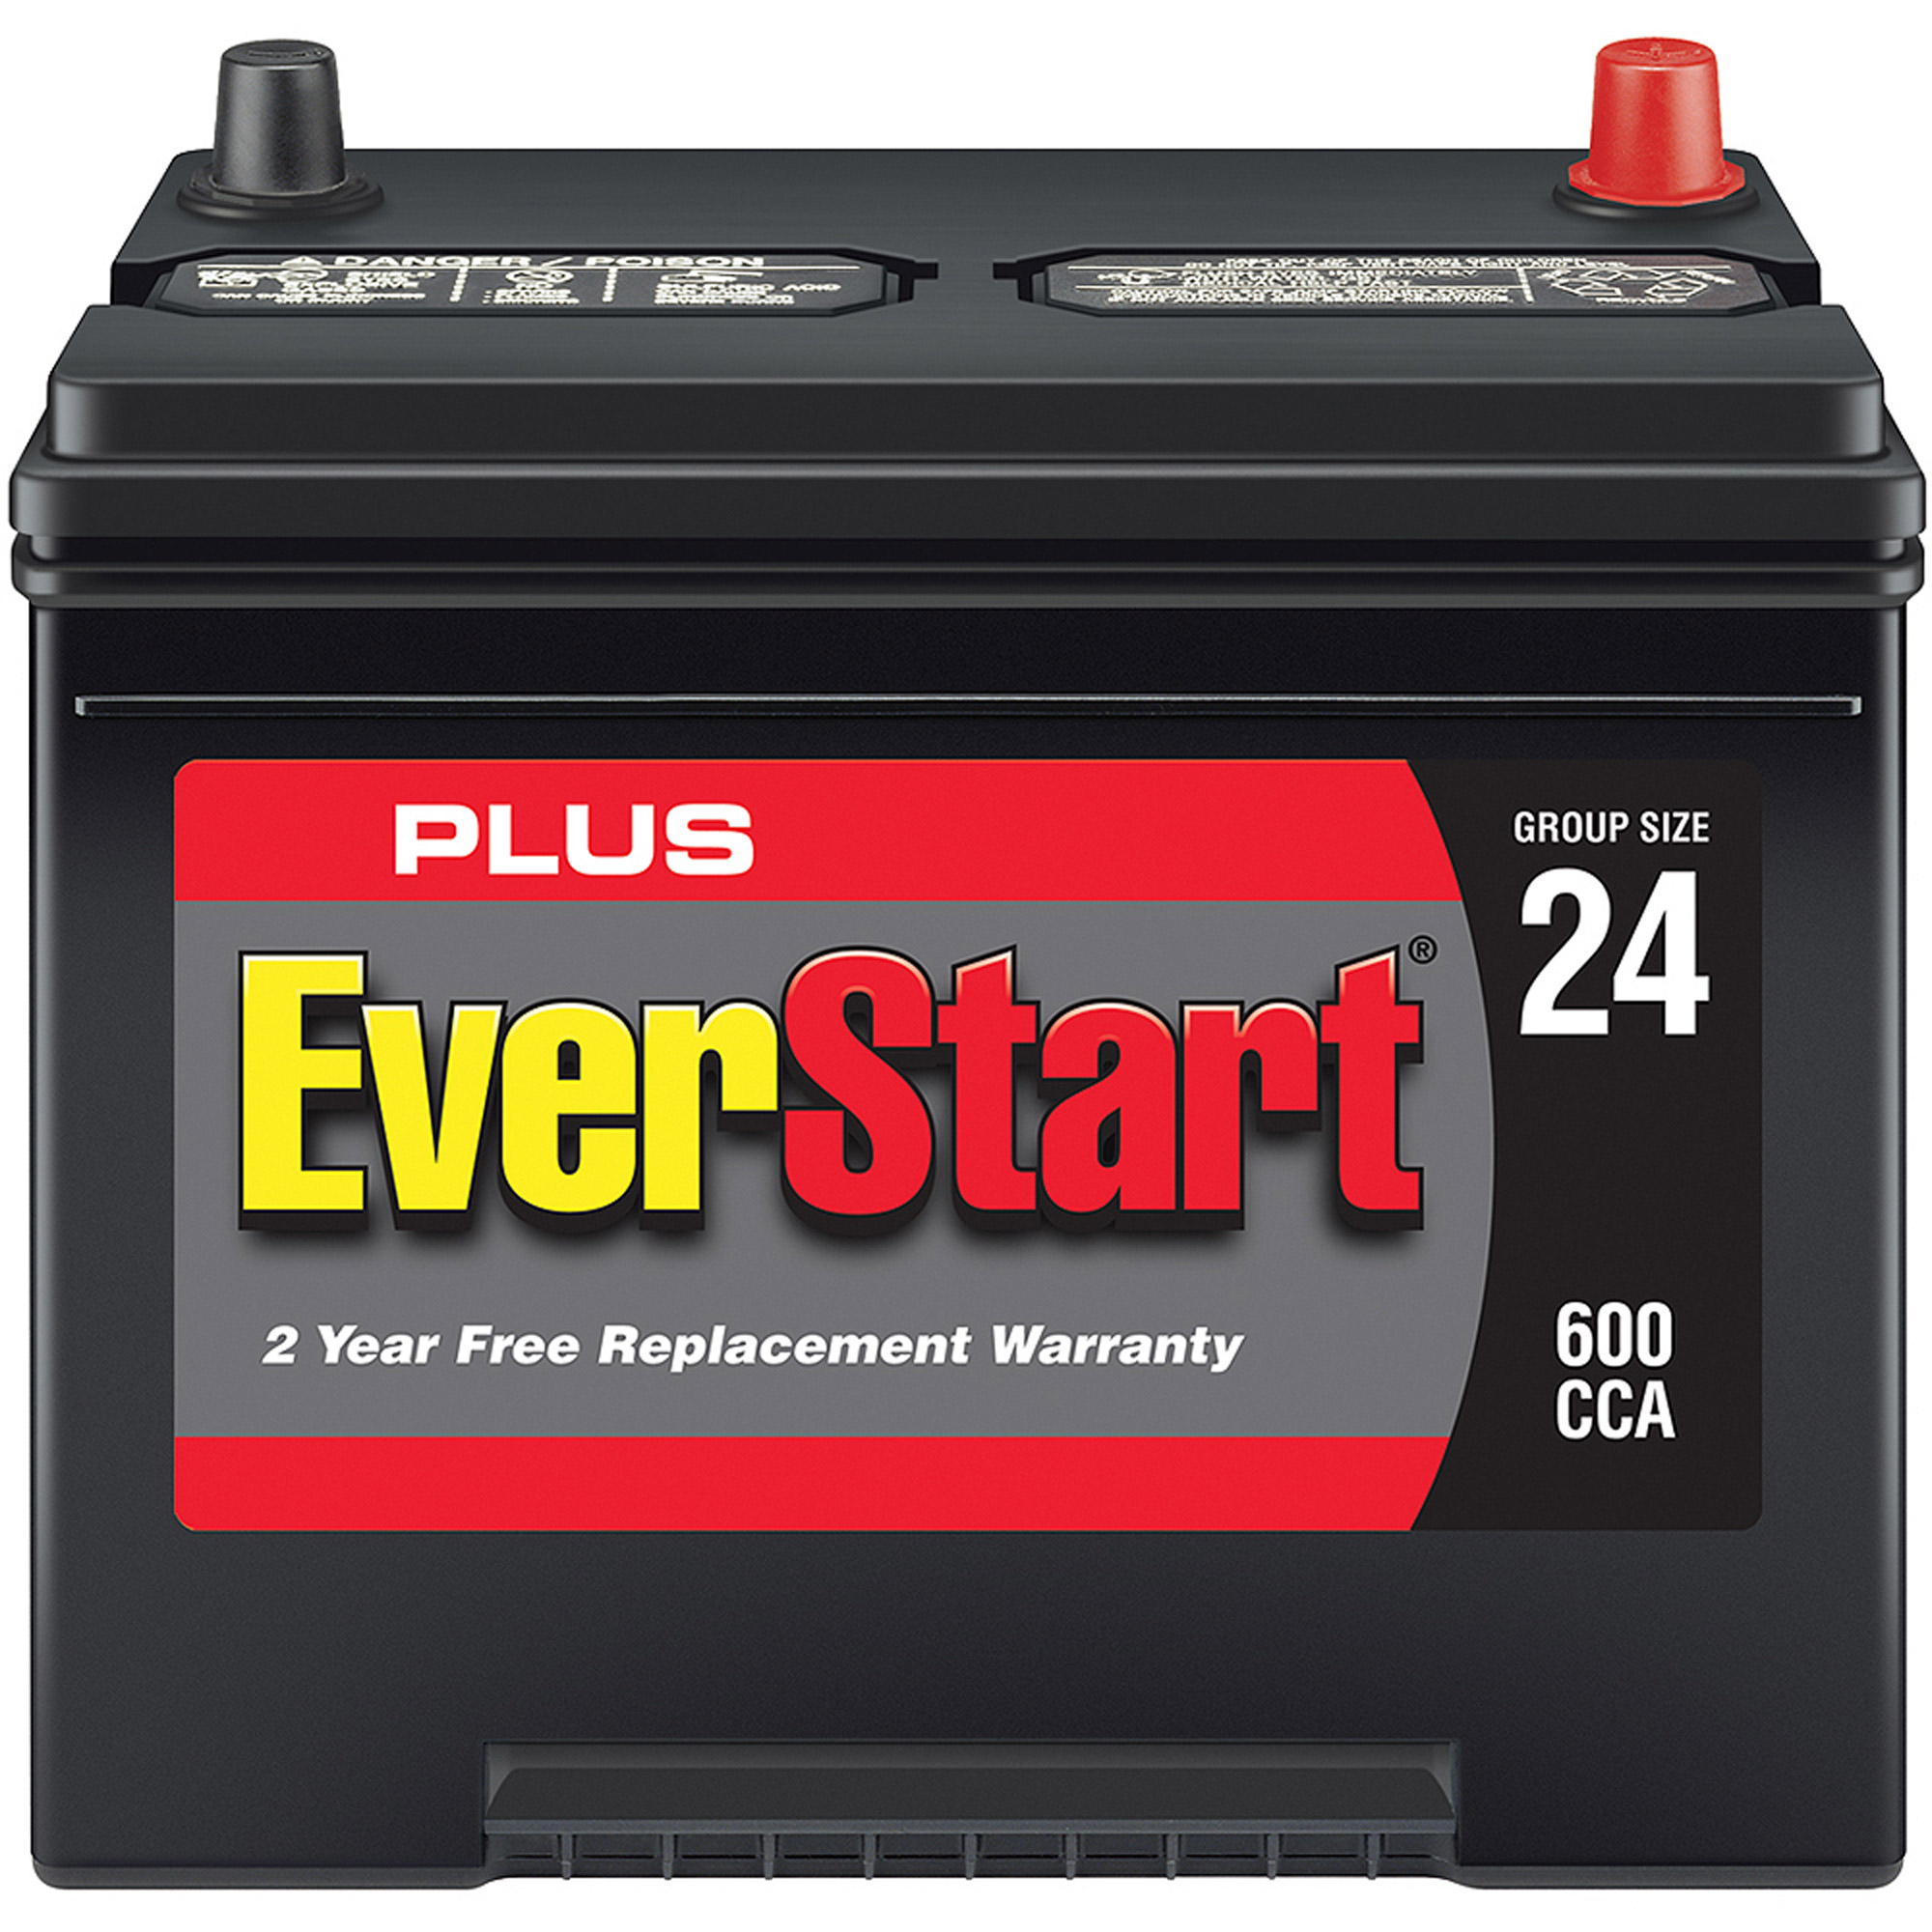 Jul 22,  · References: How to Recondition a Car Battery at Home - Moldite. TLDR: Wal-Mart doesn't have the proper tools to even diagnose a bad battery and will not honor the replacement period on Everstart batteries. Buy a car battery from ANY auto parts store instead. Goto another location.